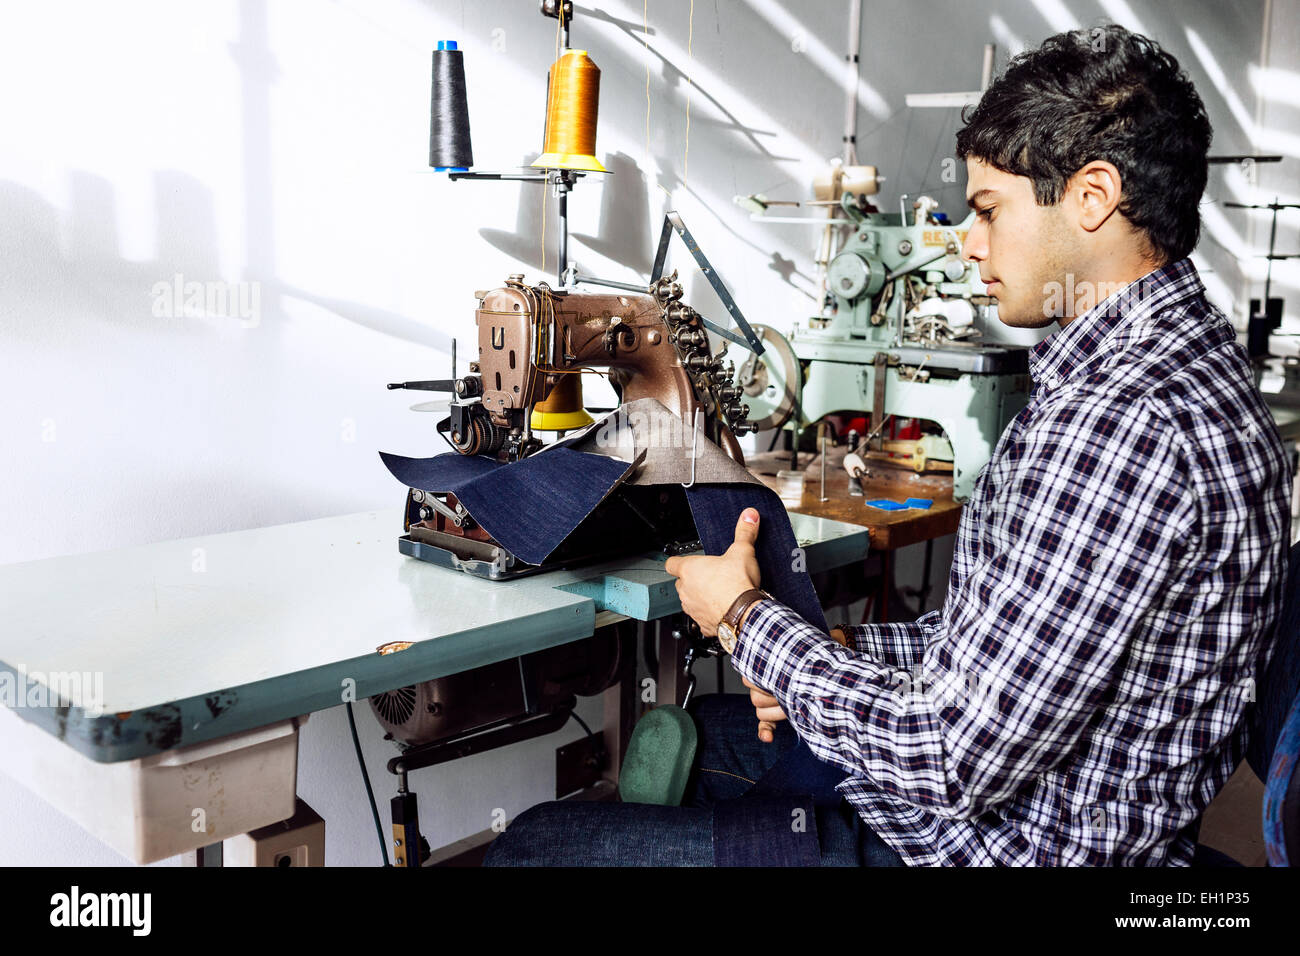 Tailor sewing jeans in factory - Stock Image